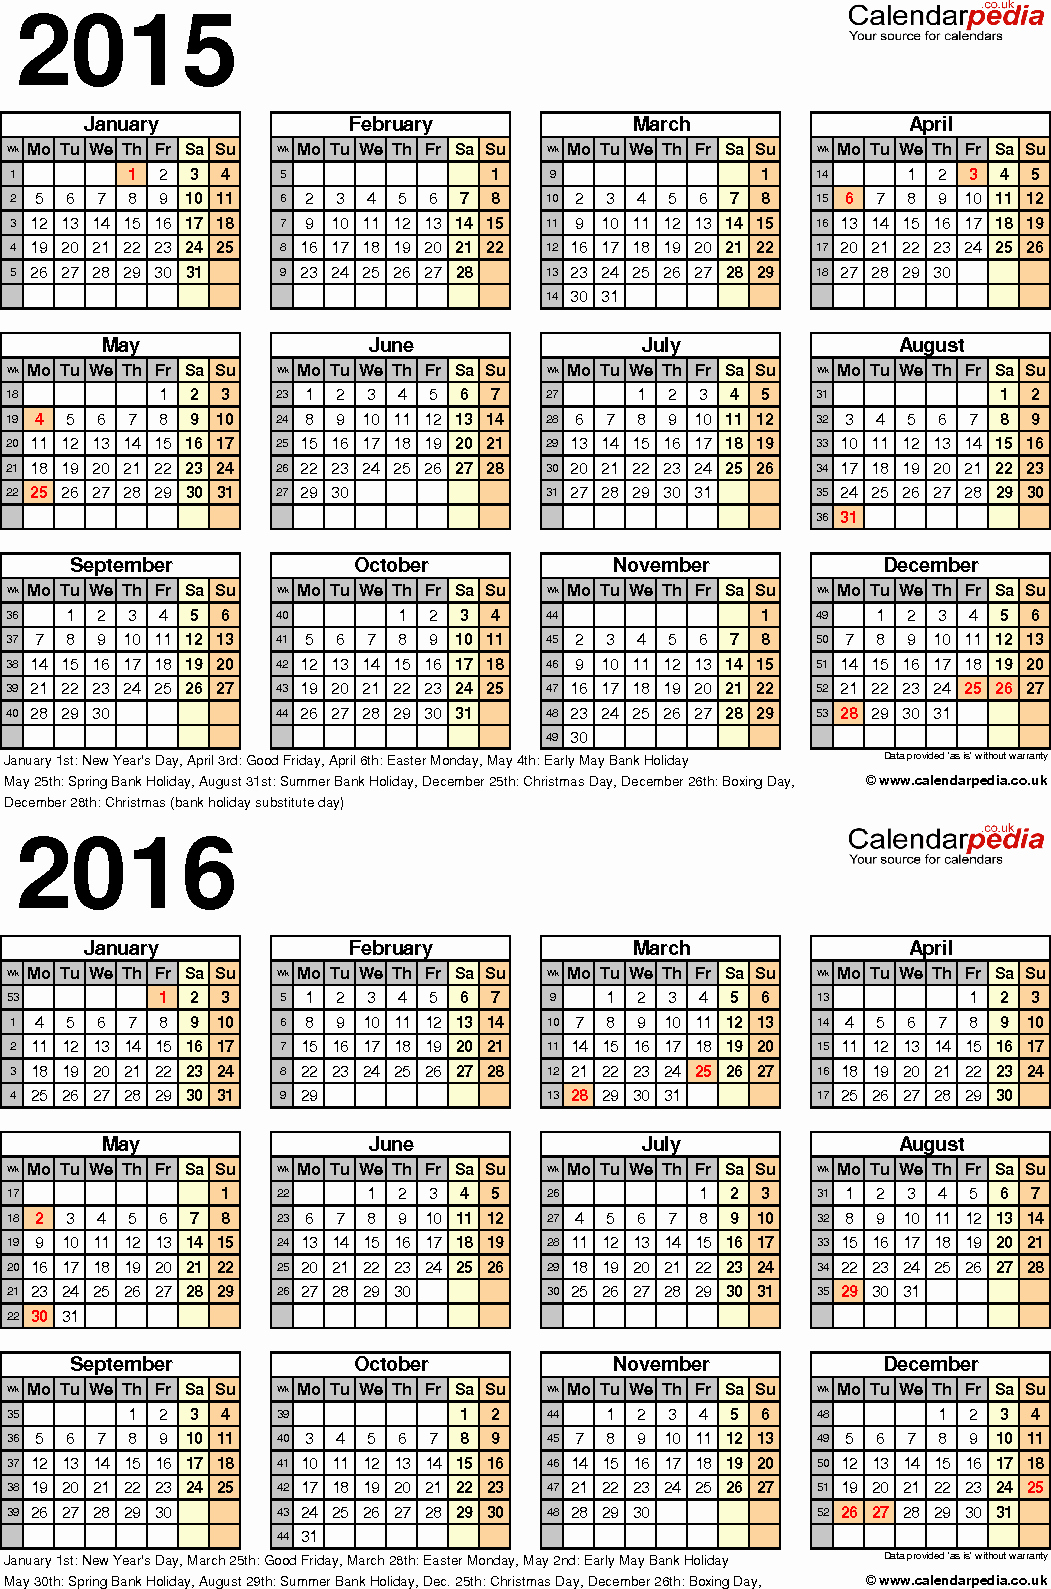 Blank Calendar 2016-17 New Two Year Calendars for 2015 & 2016 Uk for Pdf